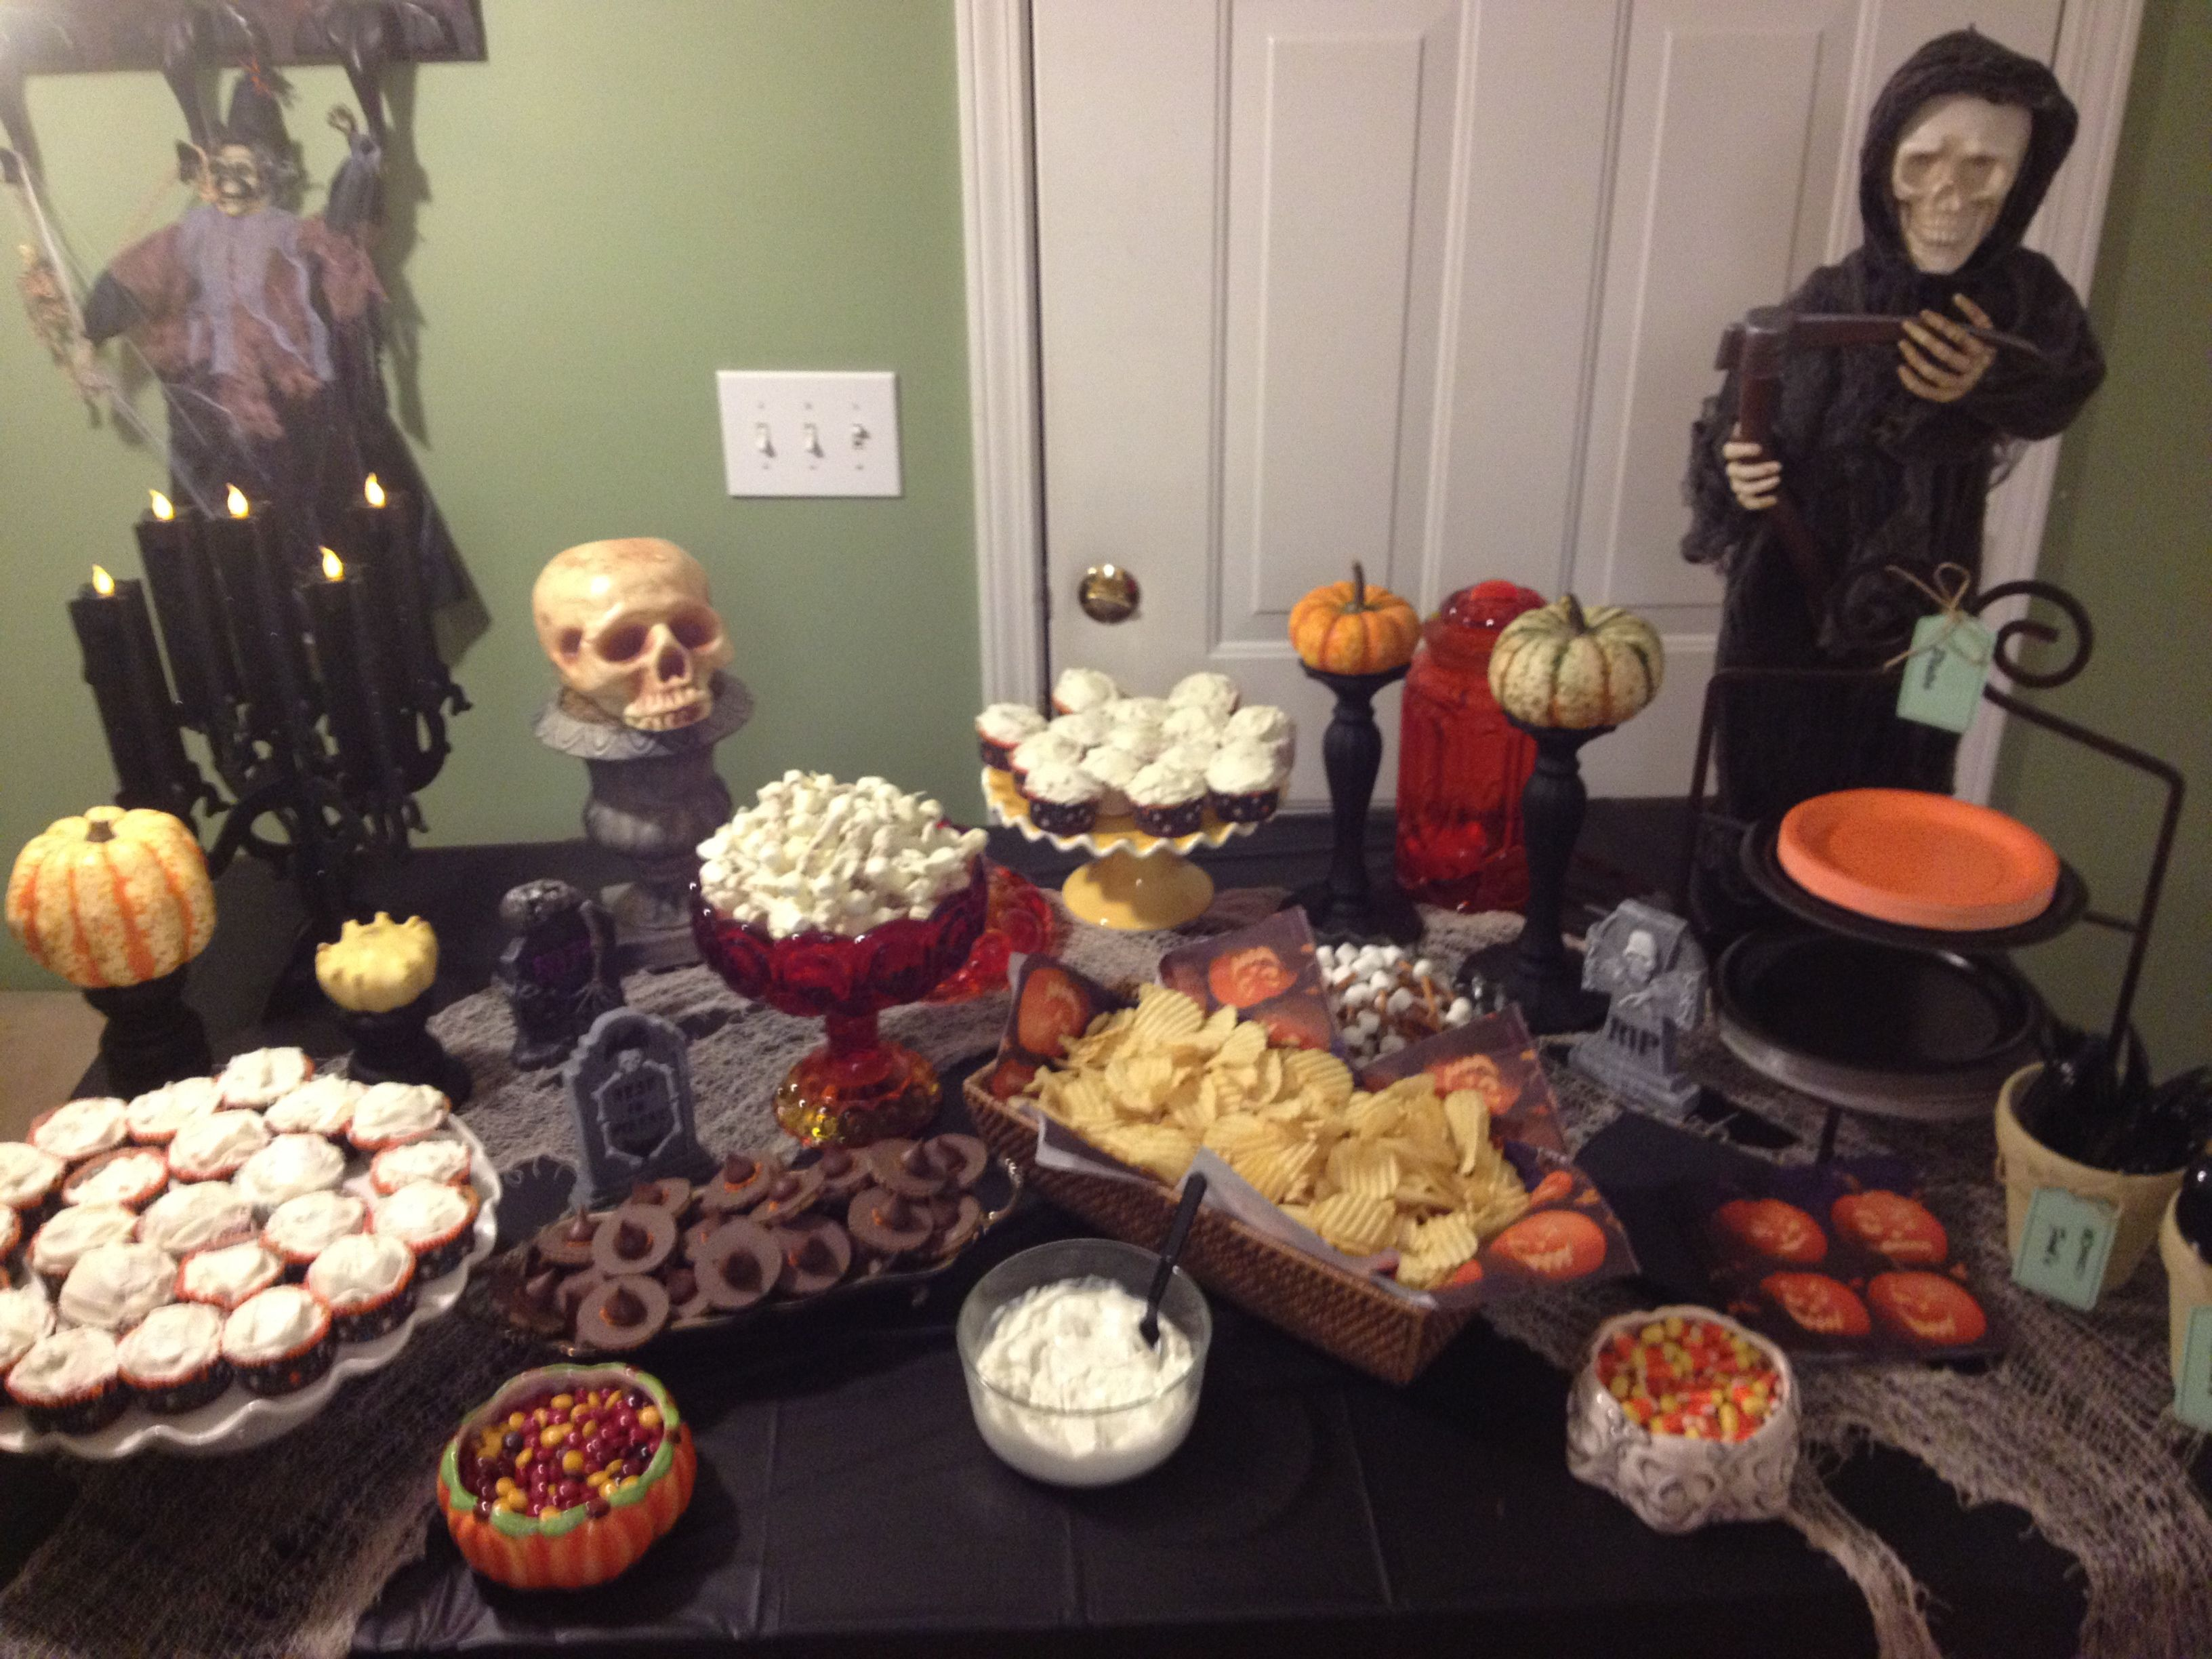 So Happy With How My Buffet Table Turned Out For The Family Pumpkin Carving Party Yesterday Thanks To Pinterest Pumpkin Carving Party Pumpkin Carving Pumpkin